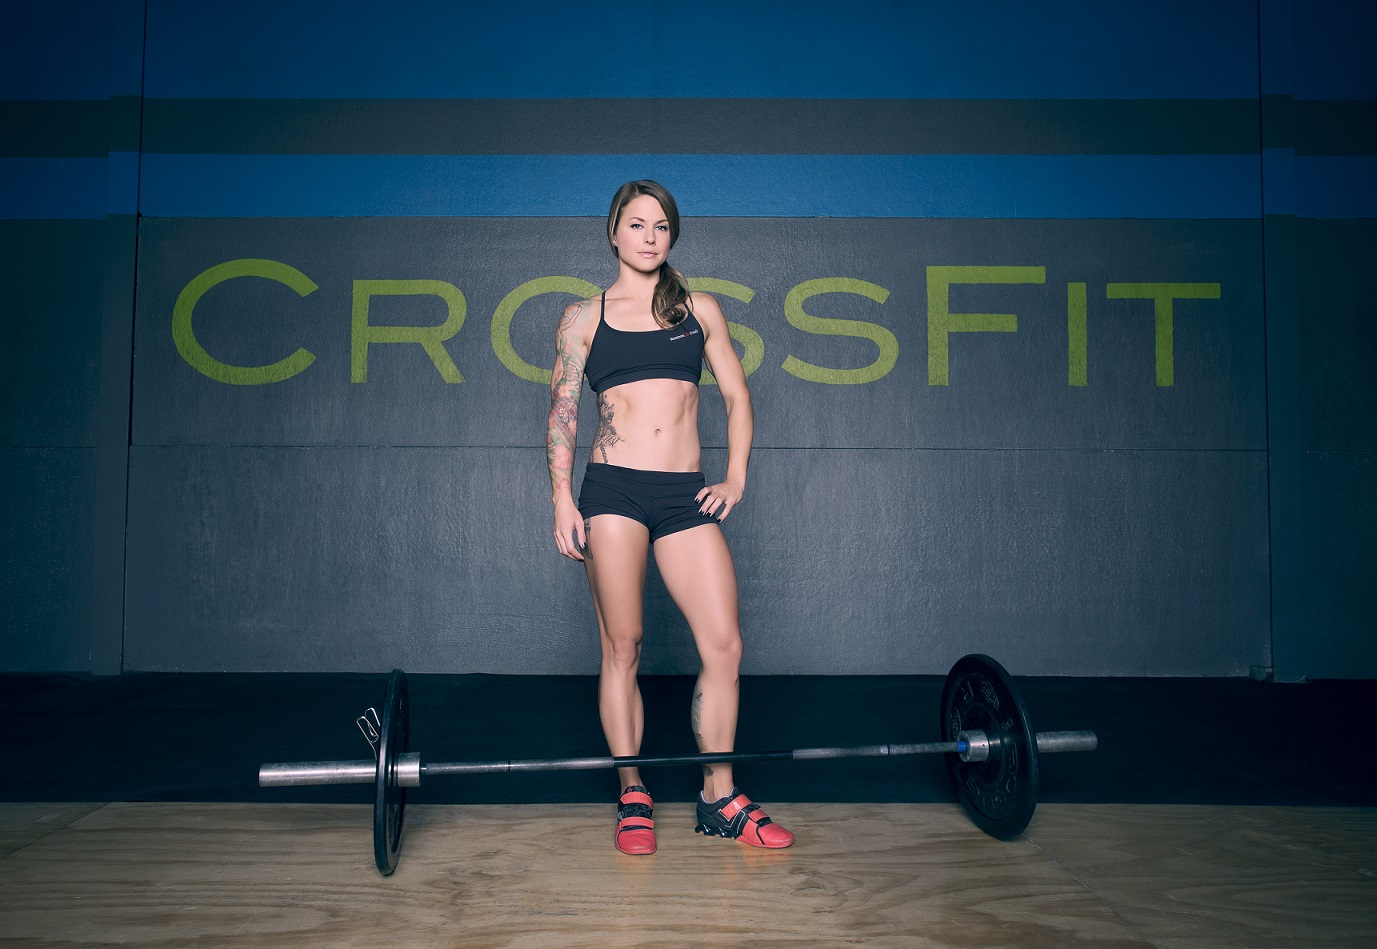 Christmas Abbott.Crossfit Icon Christmas Abbott S Journey From Front Line To